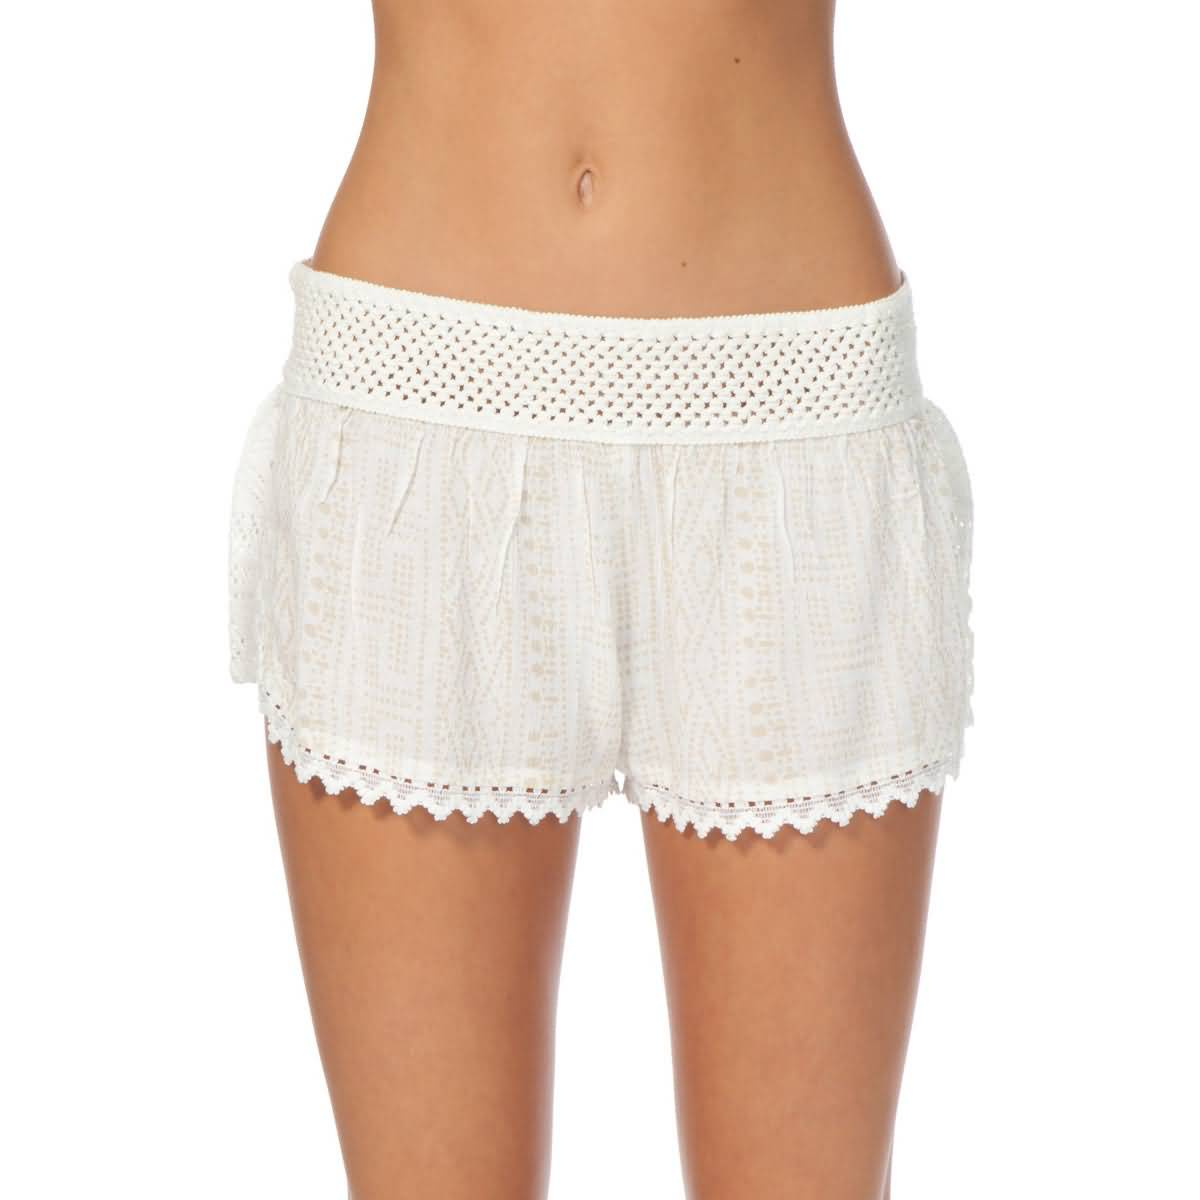 Rip Curl High Tide Women's Shorts-GWAAF8